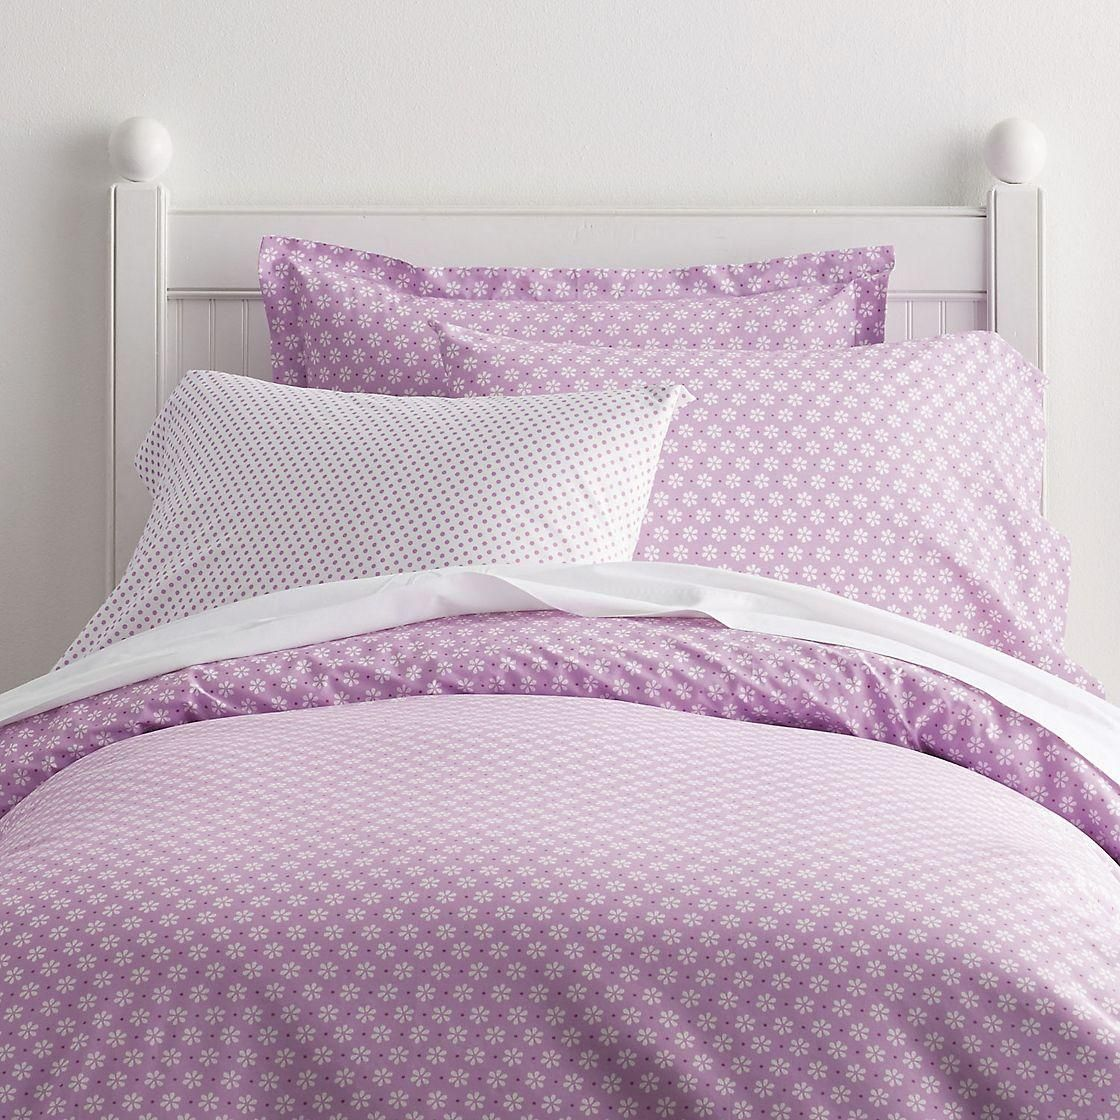 Daisy Lilac Dot Percale Bedding Duvet Cover Bed Duvet Covers